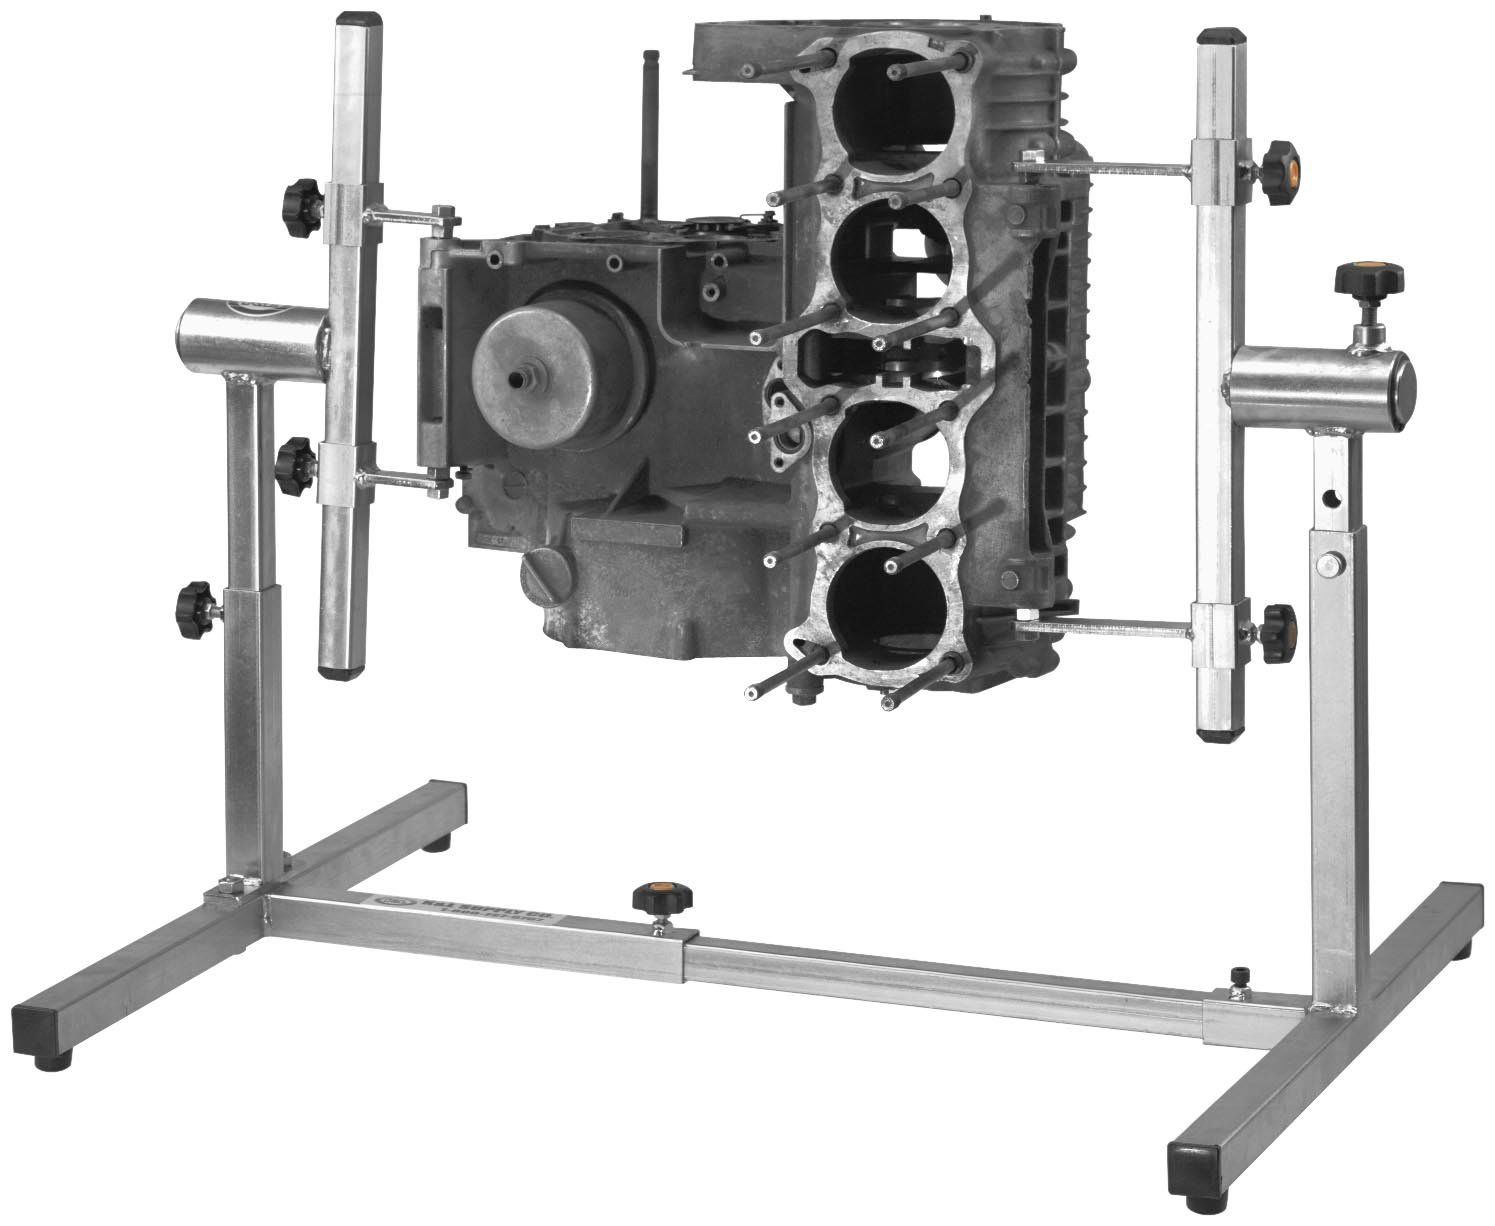 K&L Supply MC25 Metric Engine Stand 37-9352 by K&L Supply